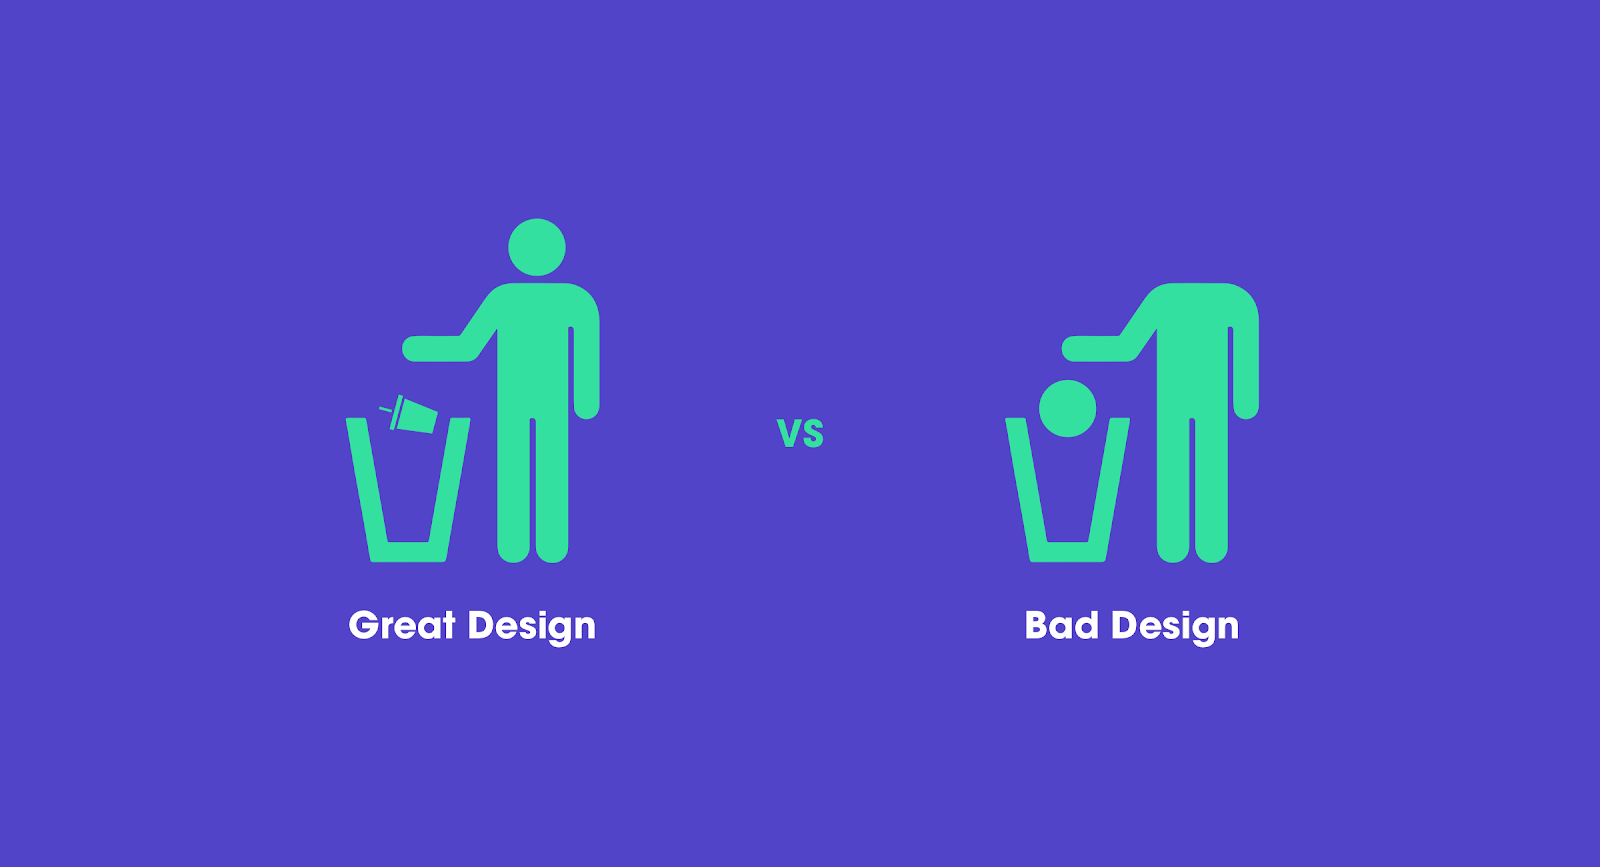 Mistakes in UX Design and Implementation